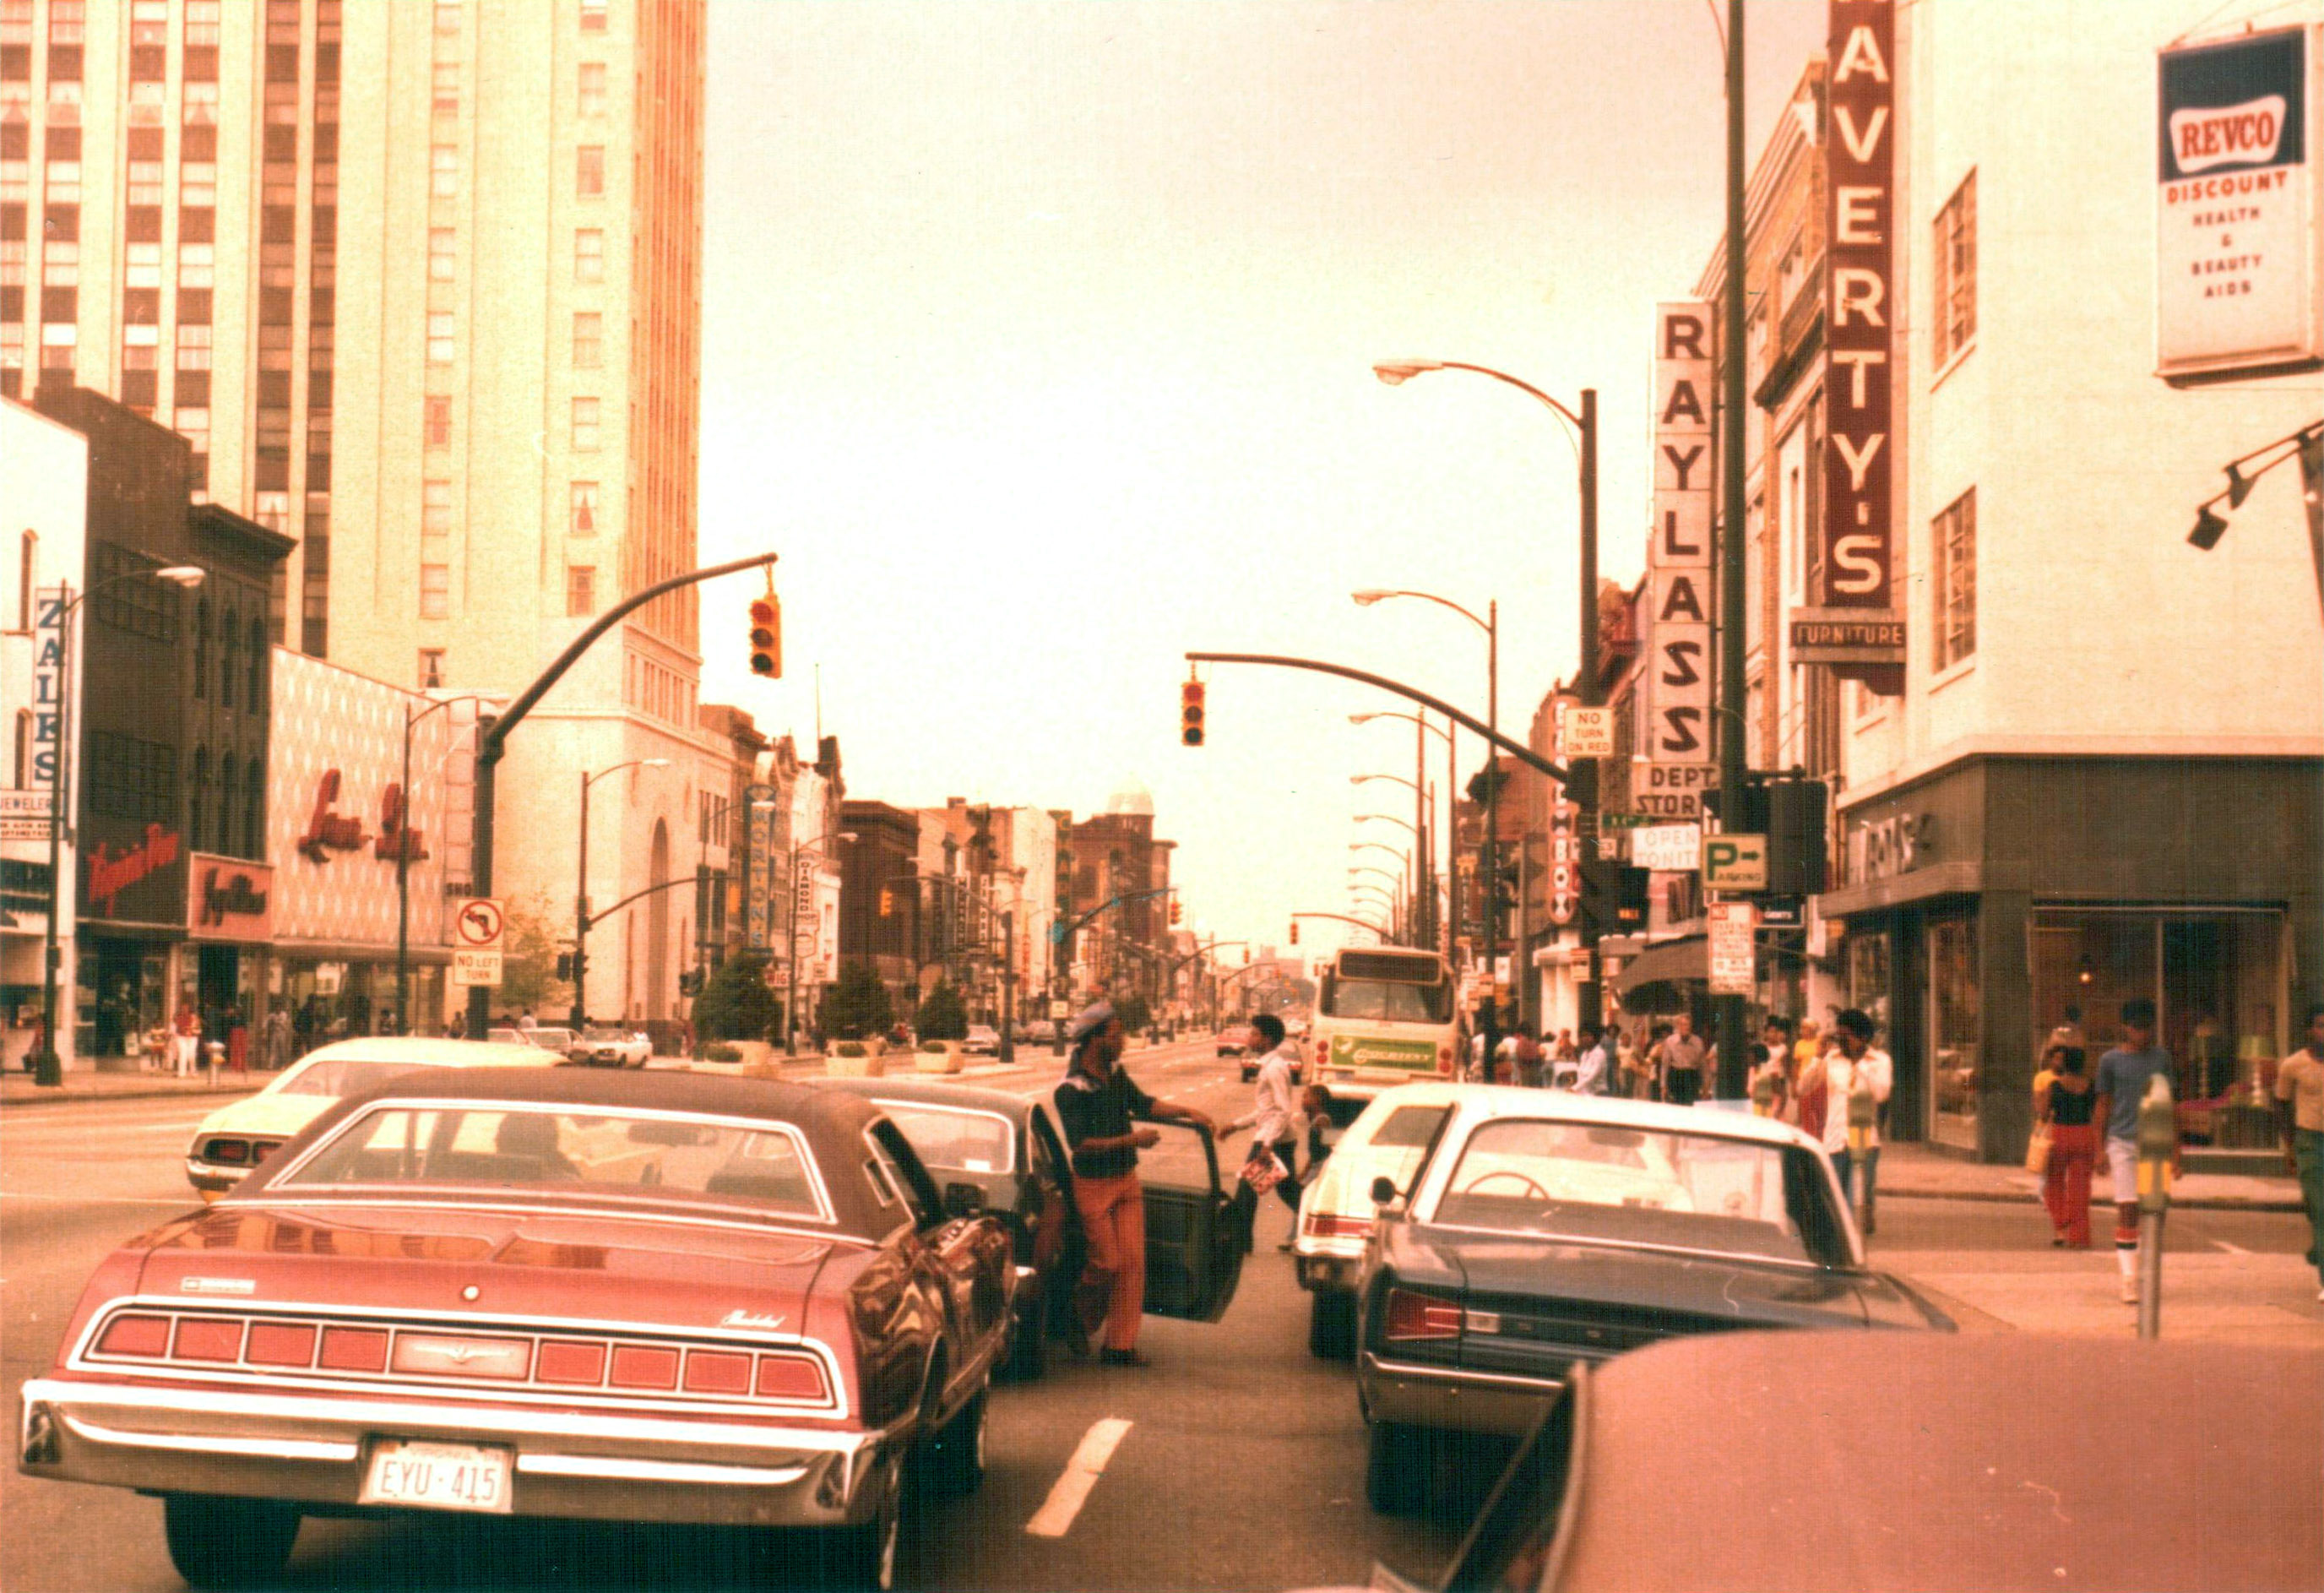 Richmond_Virginia_1977_-_Broad_Street_at_Raylass_Department_Store.jpg